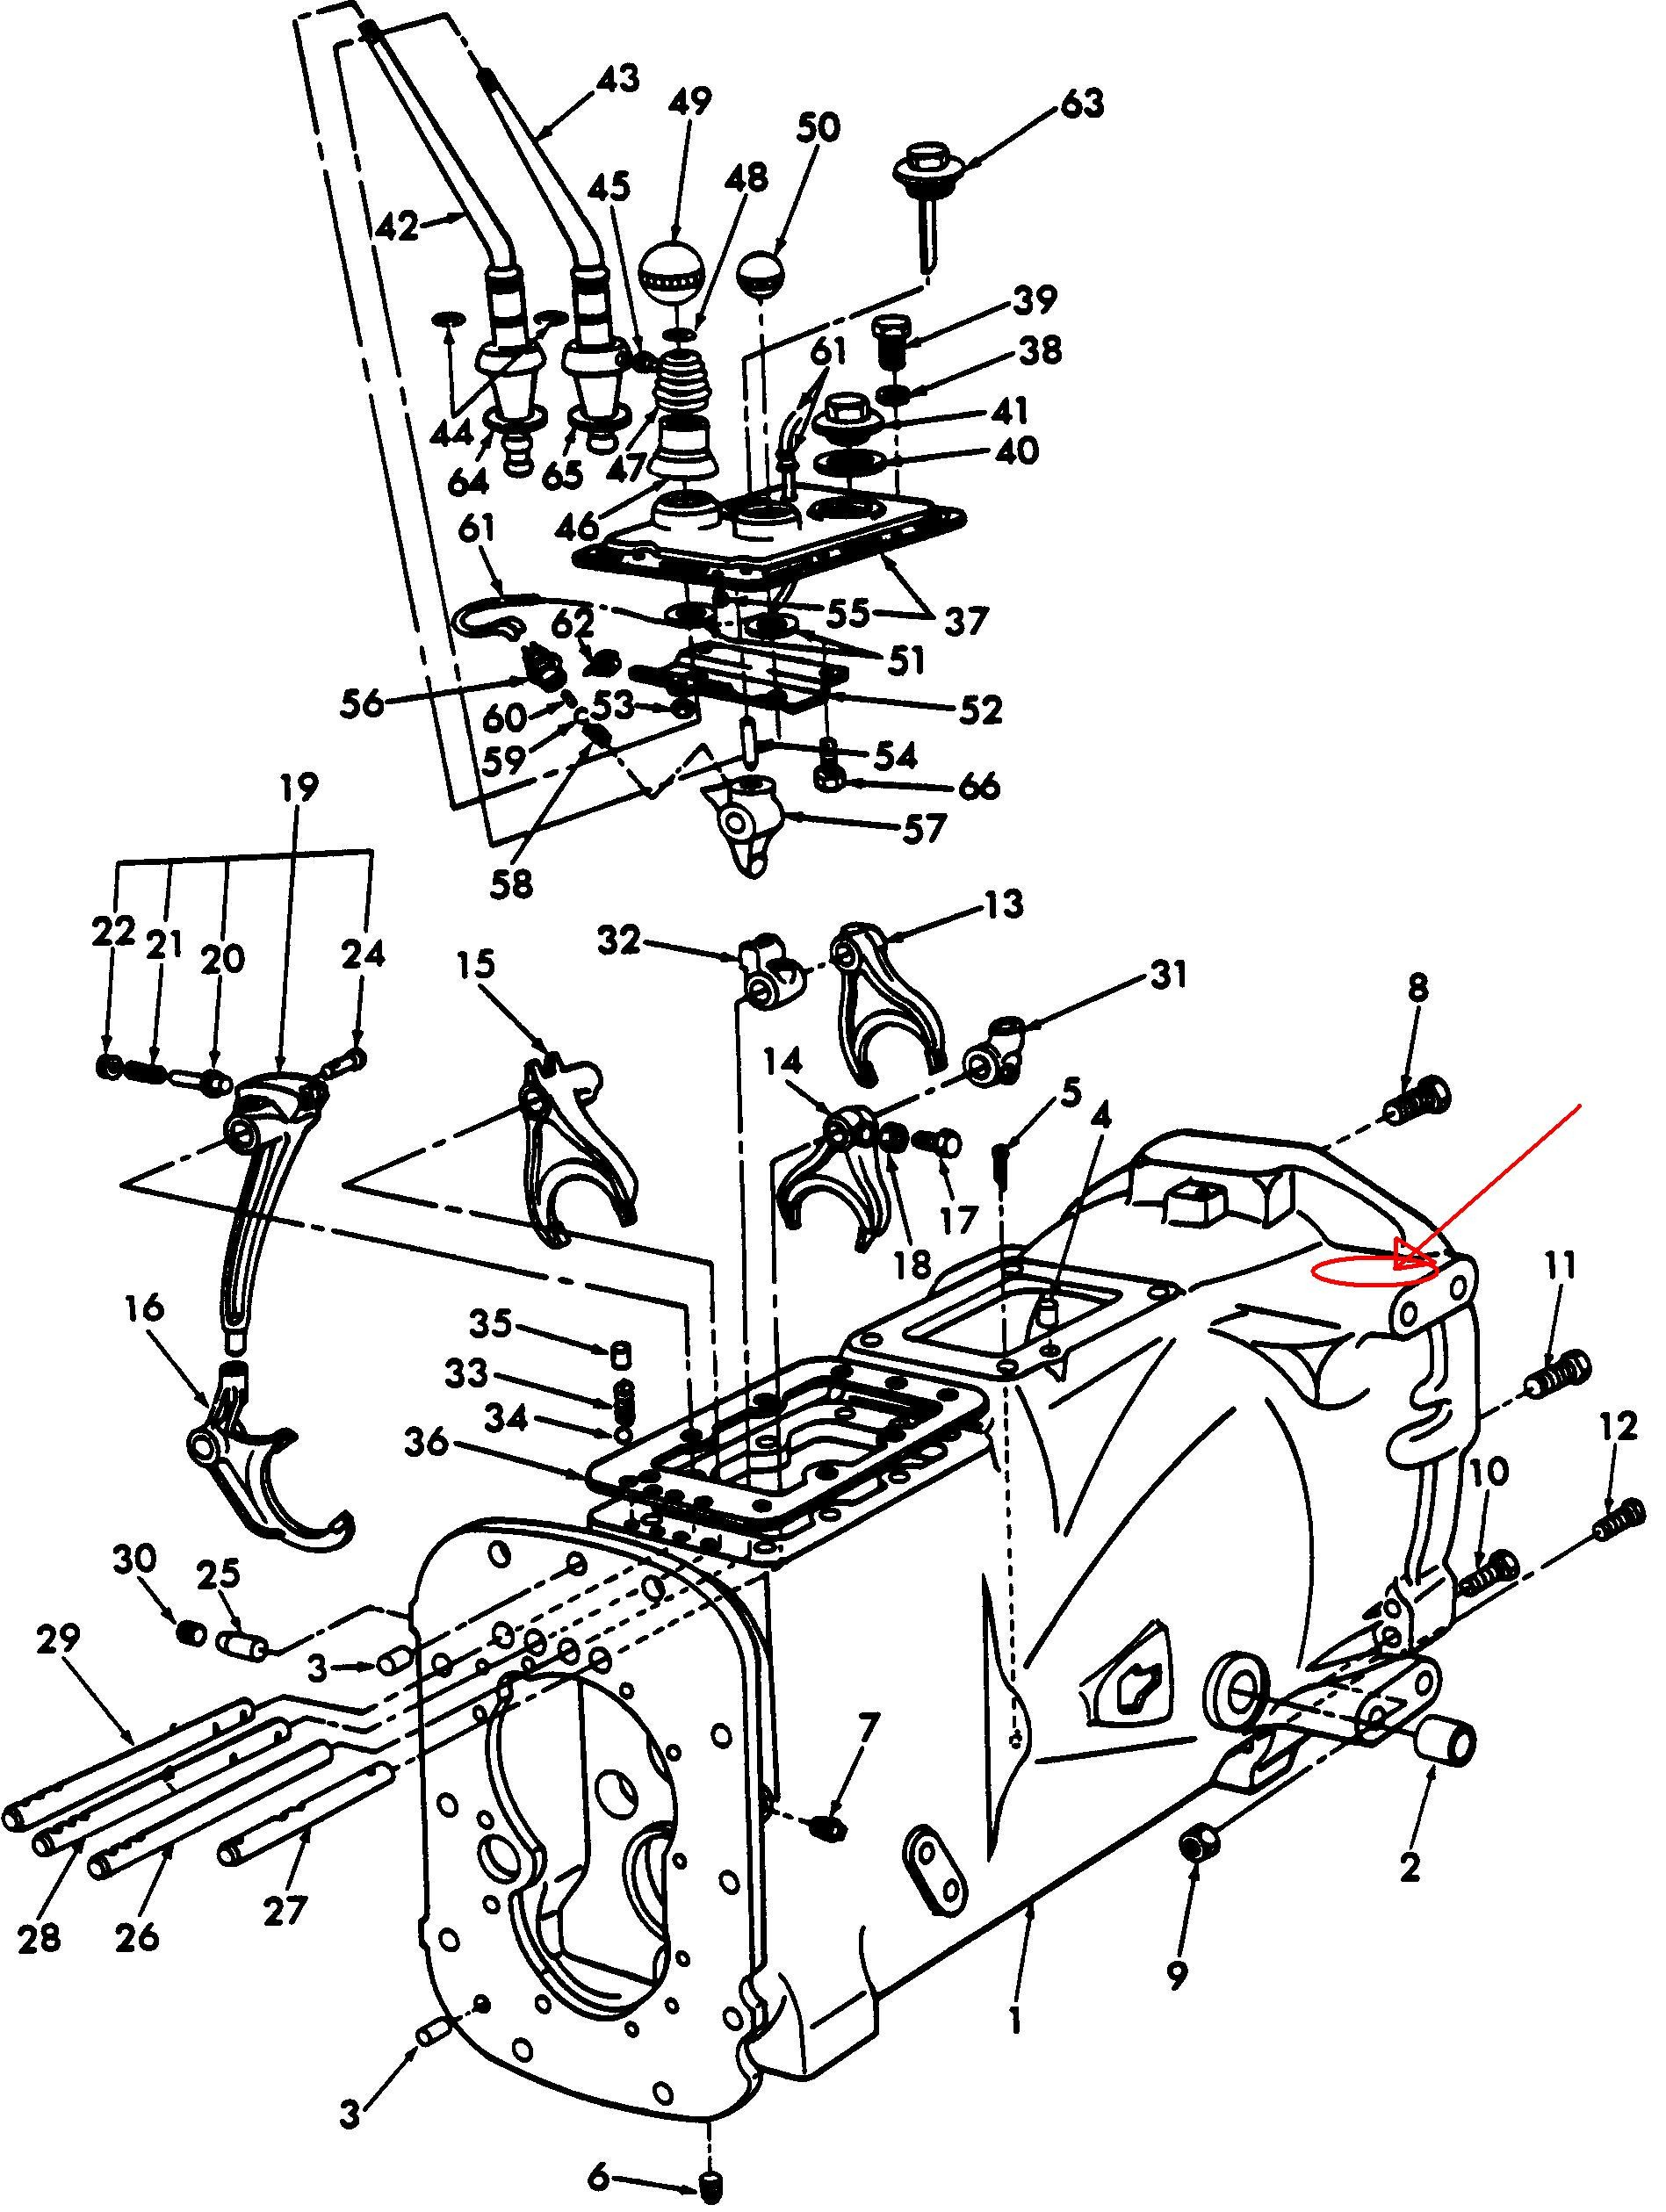 8n ford wiring diagrams free download car diagram for tractor transmission fender guitar wiring diagrams ford newholland 3930